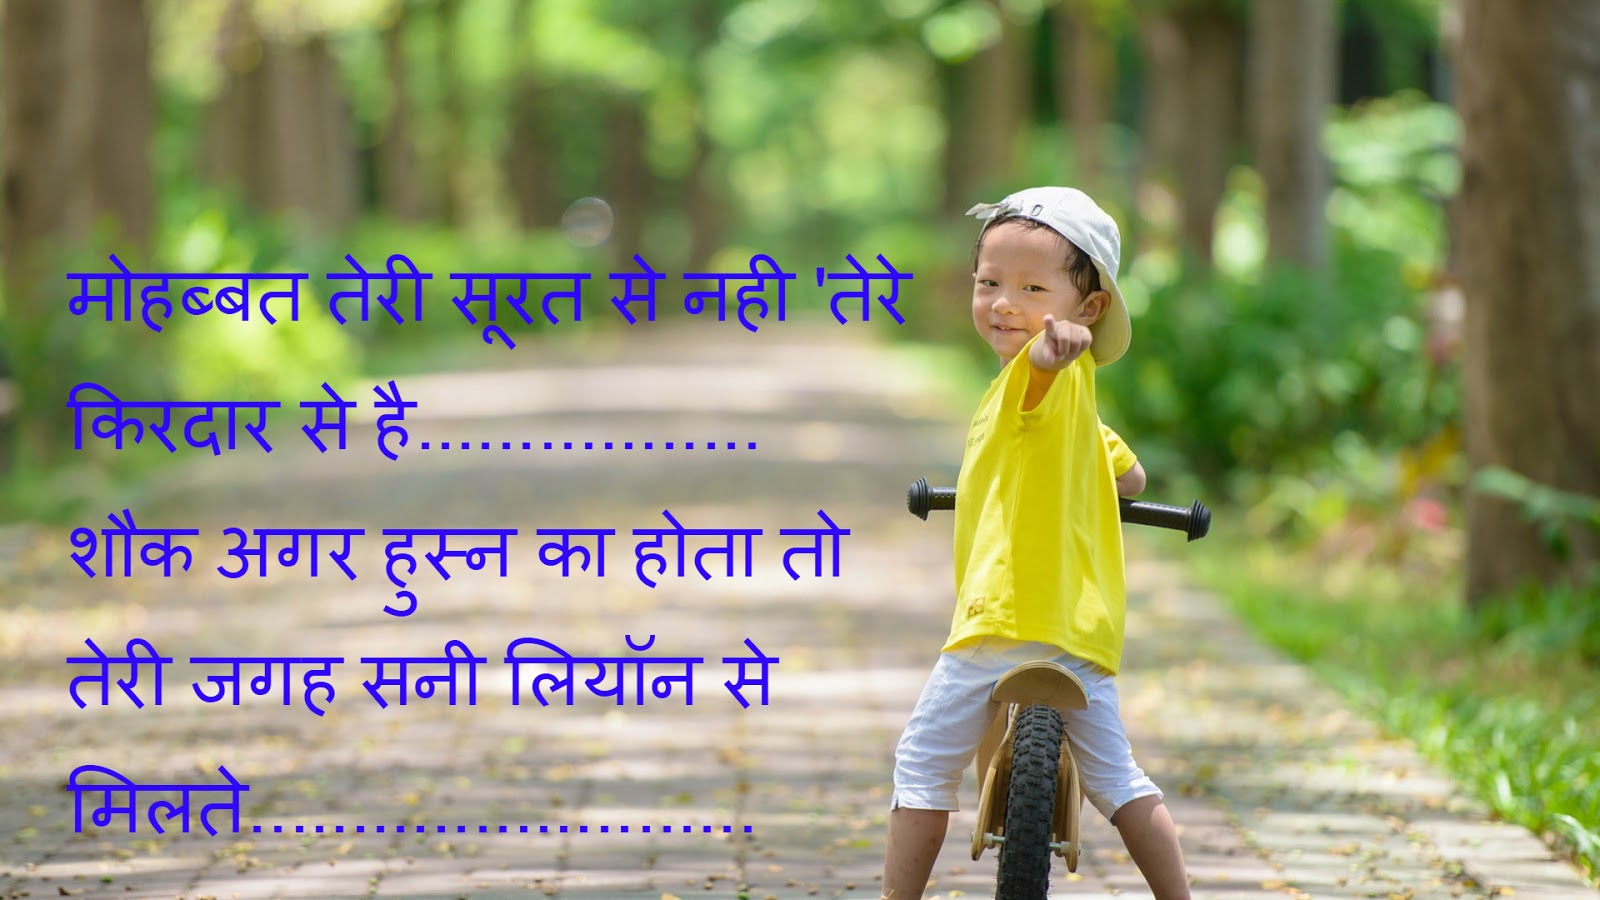 Wallpaper download love shayri - Hindi Funny Shayari Hd Wallpepar